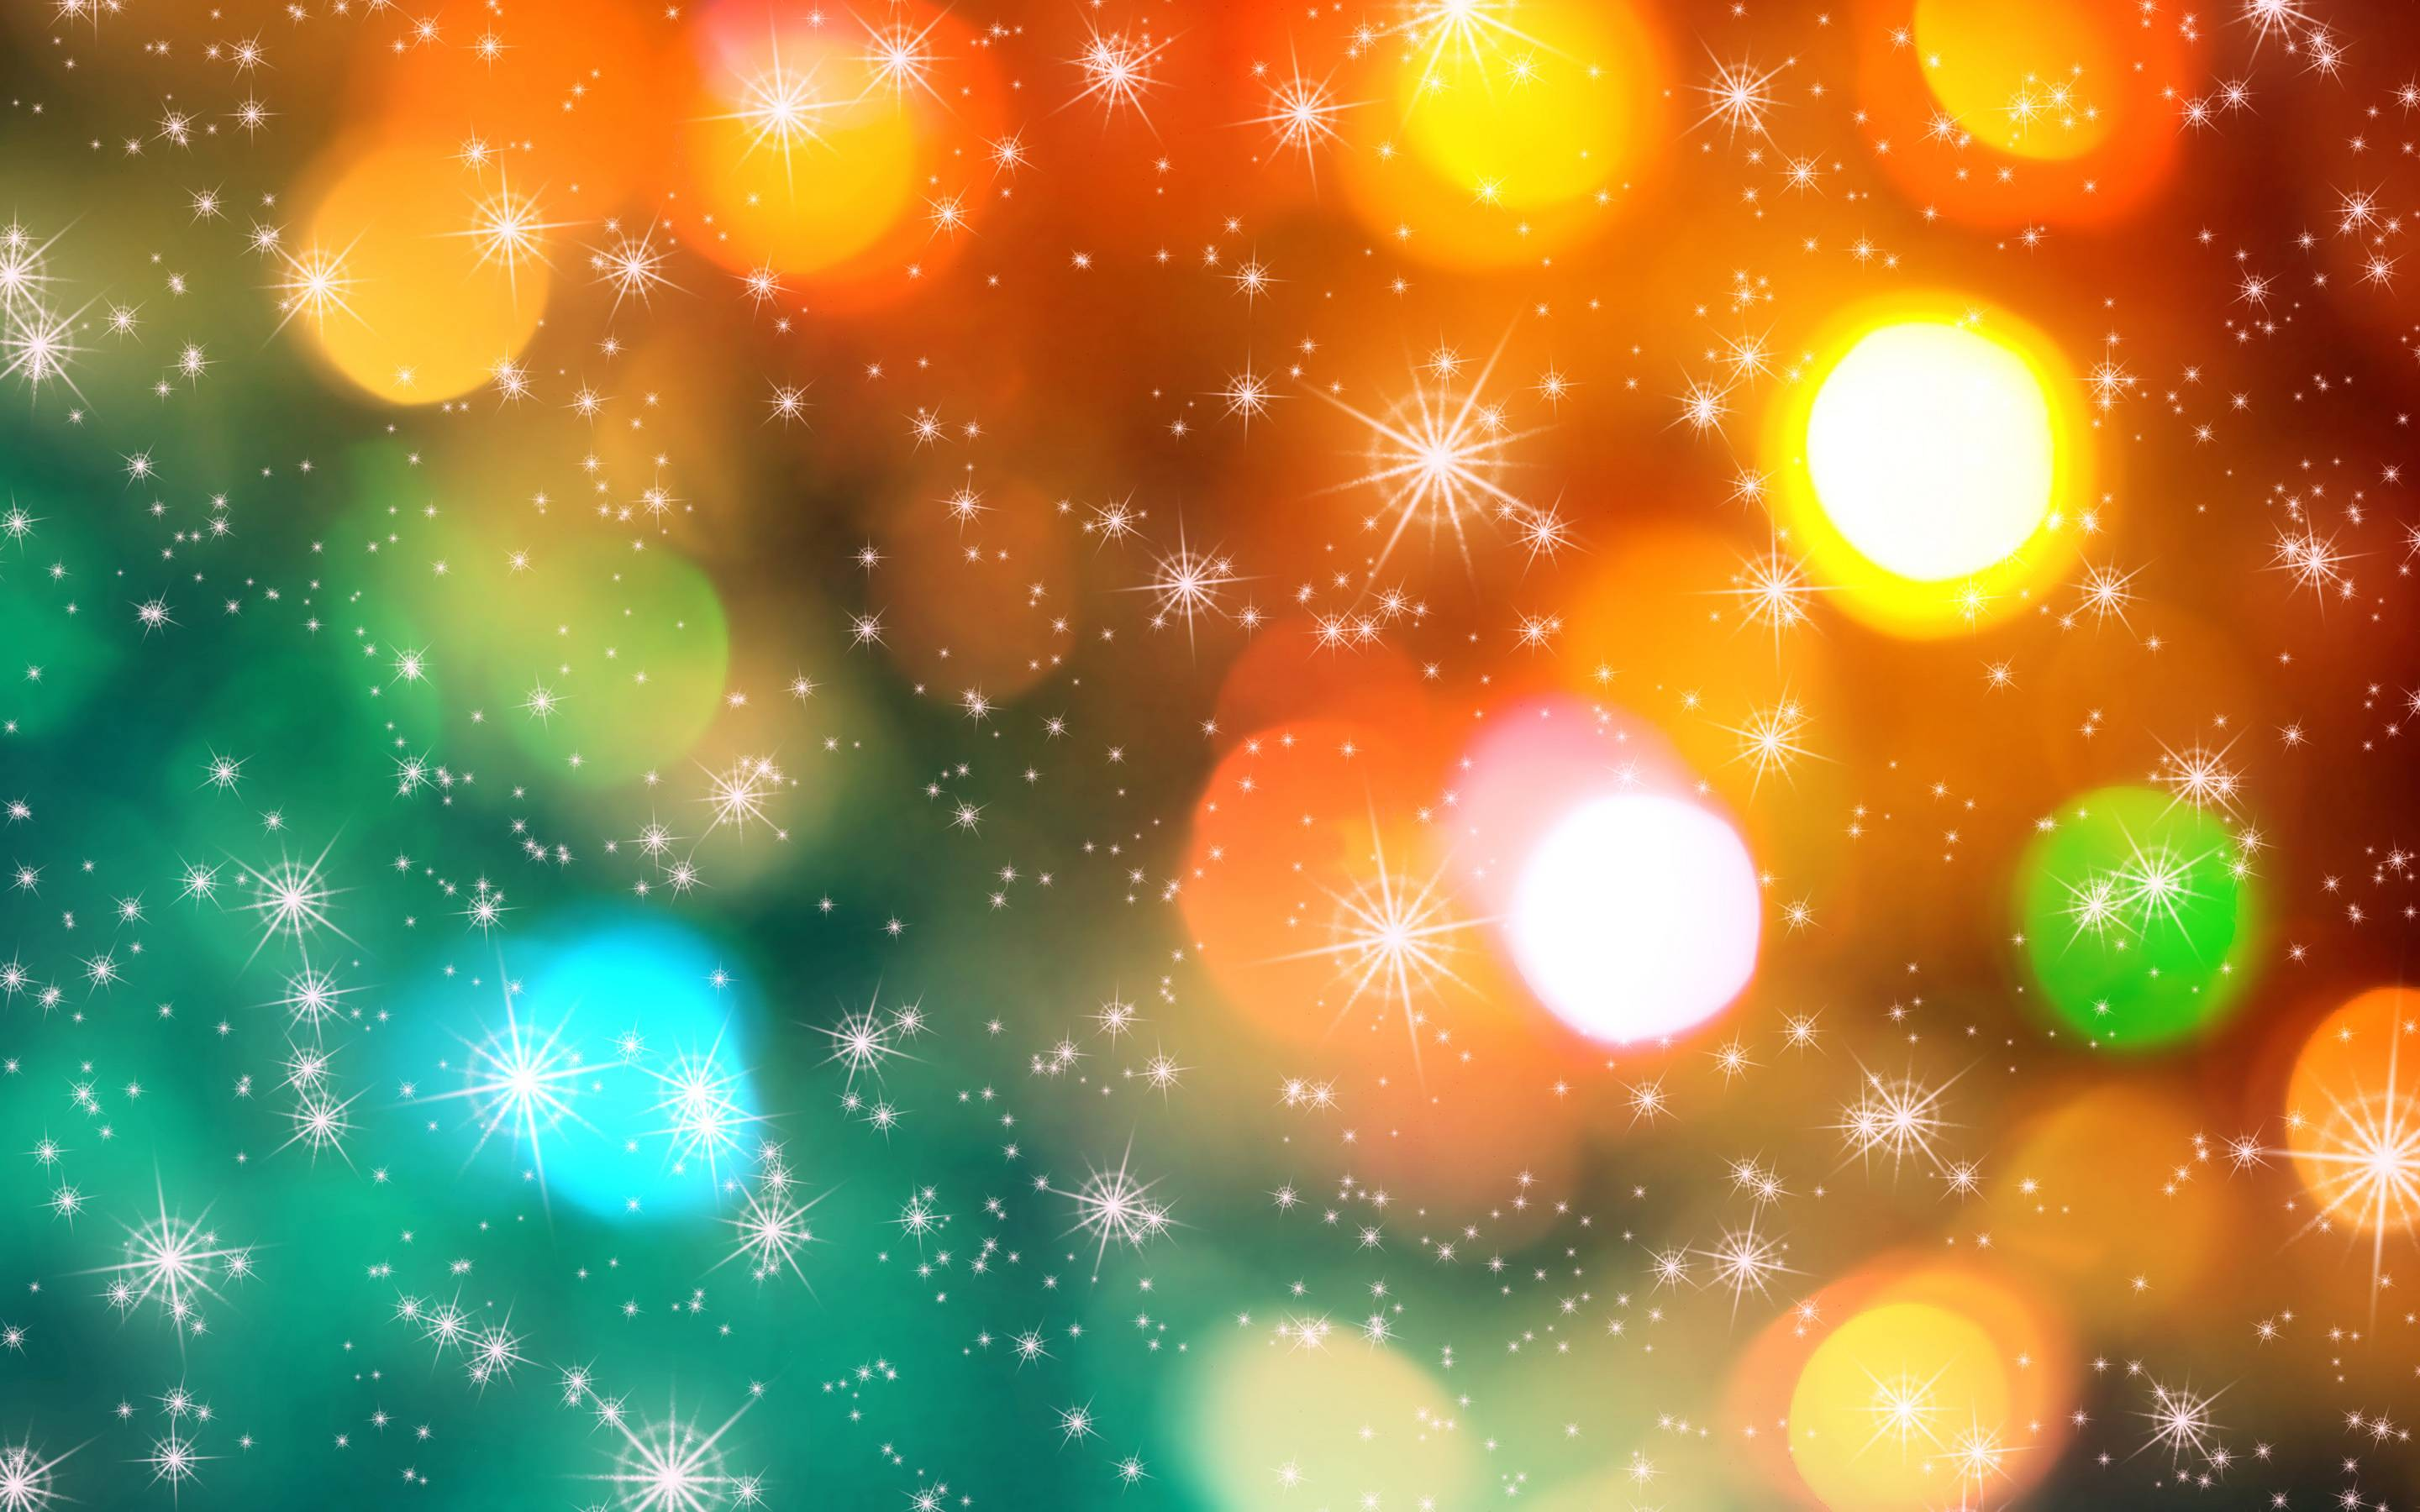 Christmas lights - Xmas Stuff For Colorful Christmas Lights Wallpaper